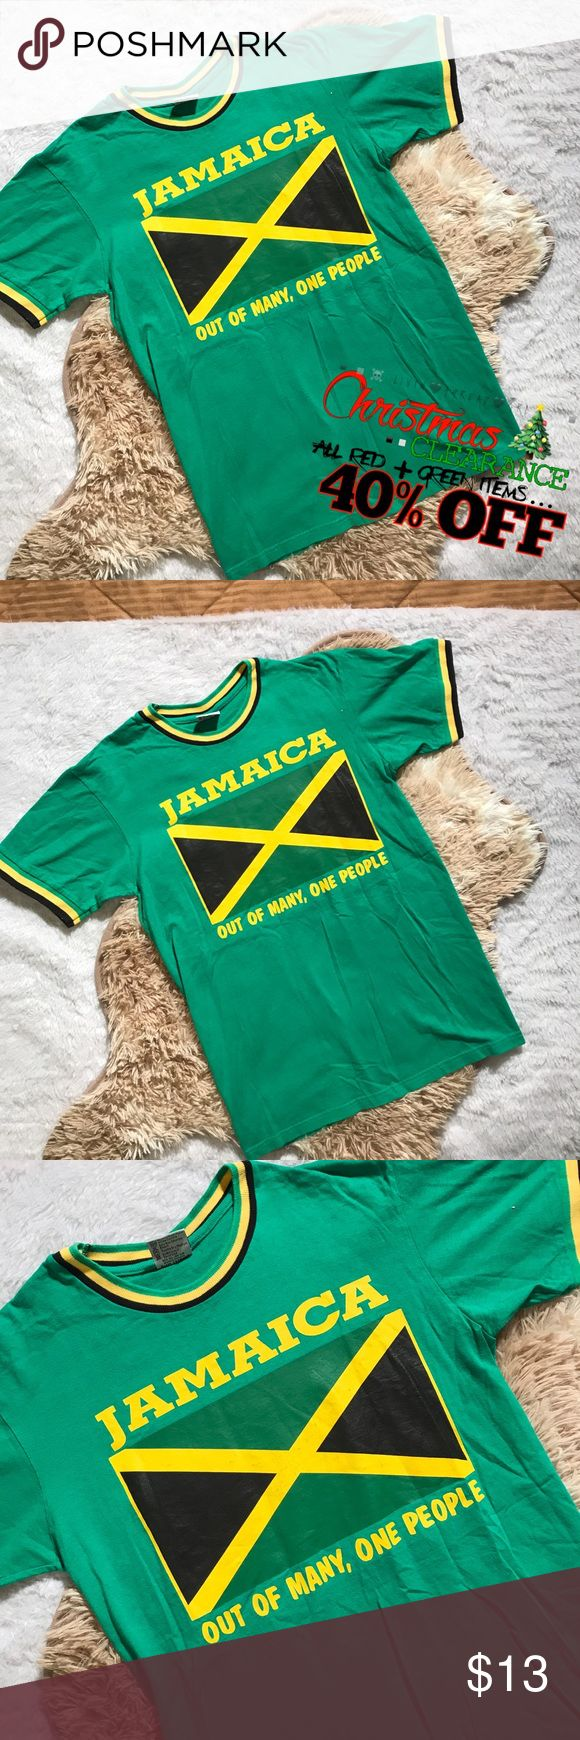 40% OFF | vtg // green jamaican flag t-shirt Vintage green Jamaican flag t-shirt  Size small, true to size Great condition; slight cracking of the flag graphic Very bright green. Very relaxed and comfortable fit. Broken in. Lots of life left.  —-  ALL RED OR GREEN ITEMS ARE 40% OFF CURRENT PRICE  ALL OTHER ITEMS ARE 20% OFF CURRENT PRICE  all discounts will be applied to current price on listing  #christmas #shopping #sale #discount #bogo #gift #present #holiday #clearance #vintage #vtg…